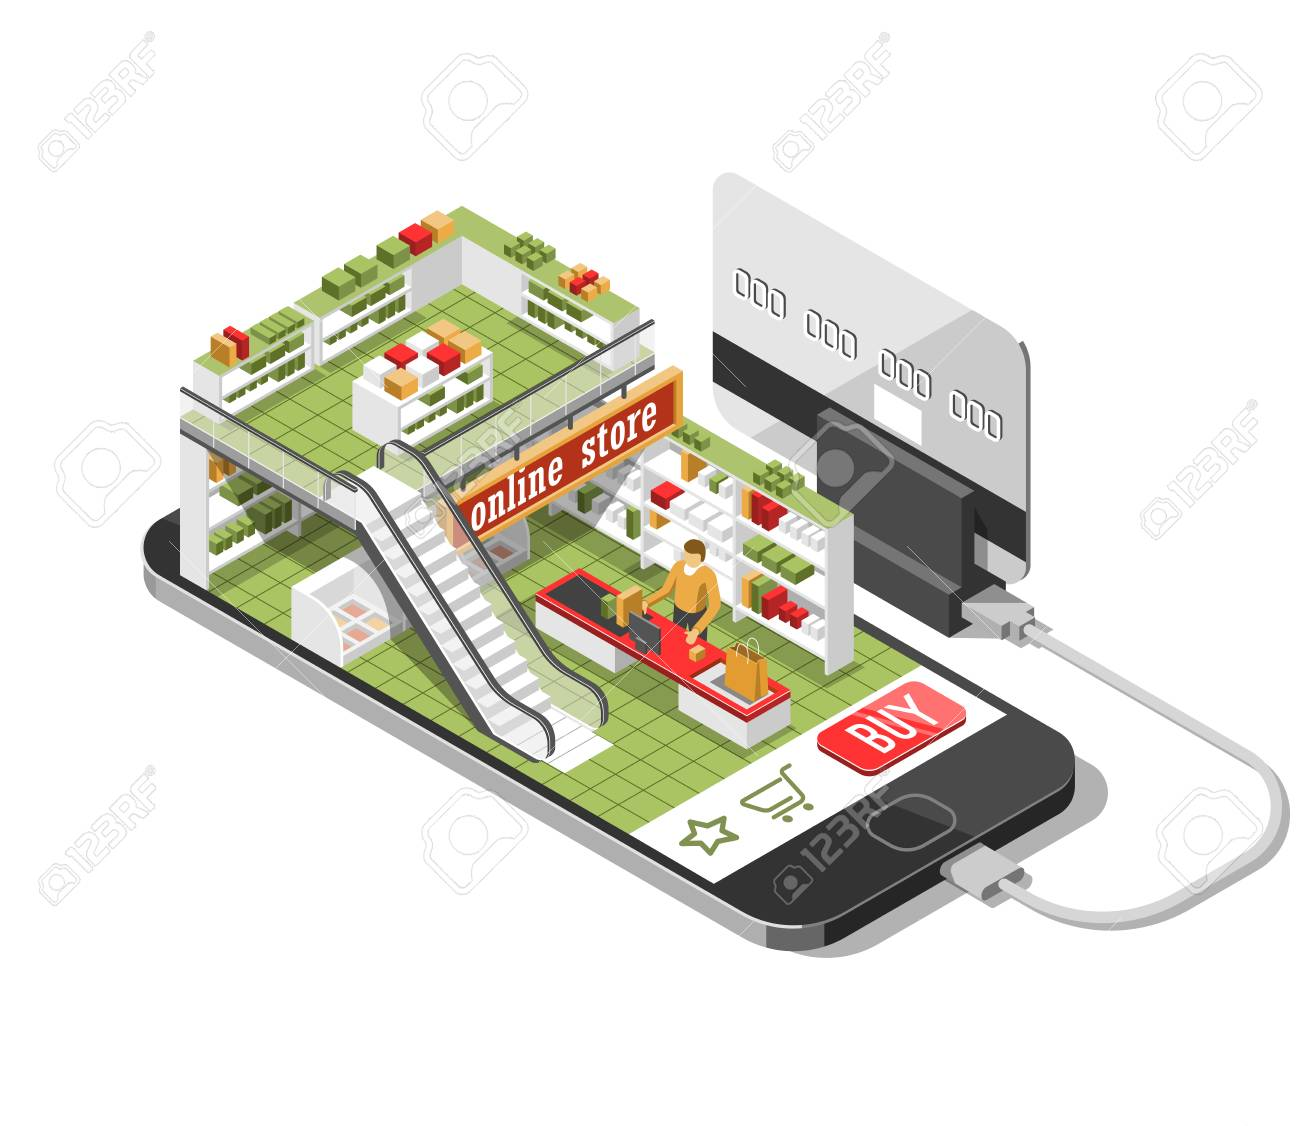 d1cb997d479 Online Shopping Isometric Shadow Illustration With Mobile Phone ...